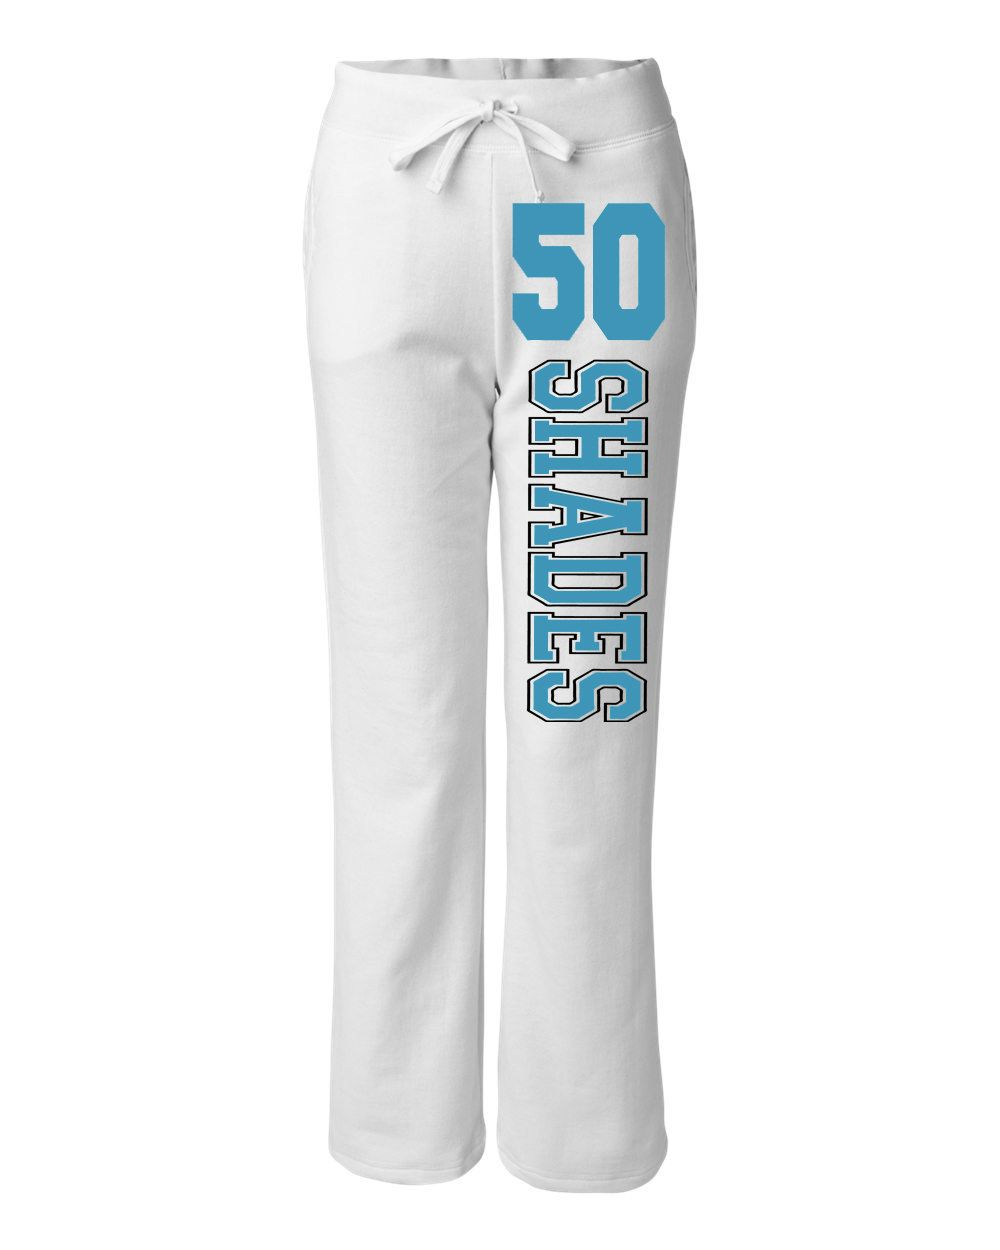 "50 Shades of Grey ""Laters, Baby"" Inspired Womens Sweat Pants - White/Teal. $26.99, via Etsy."